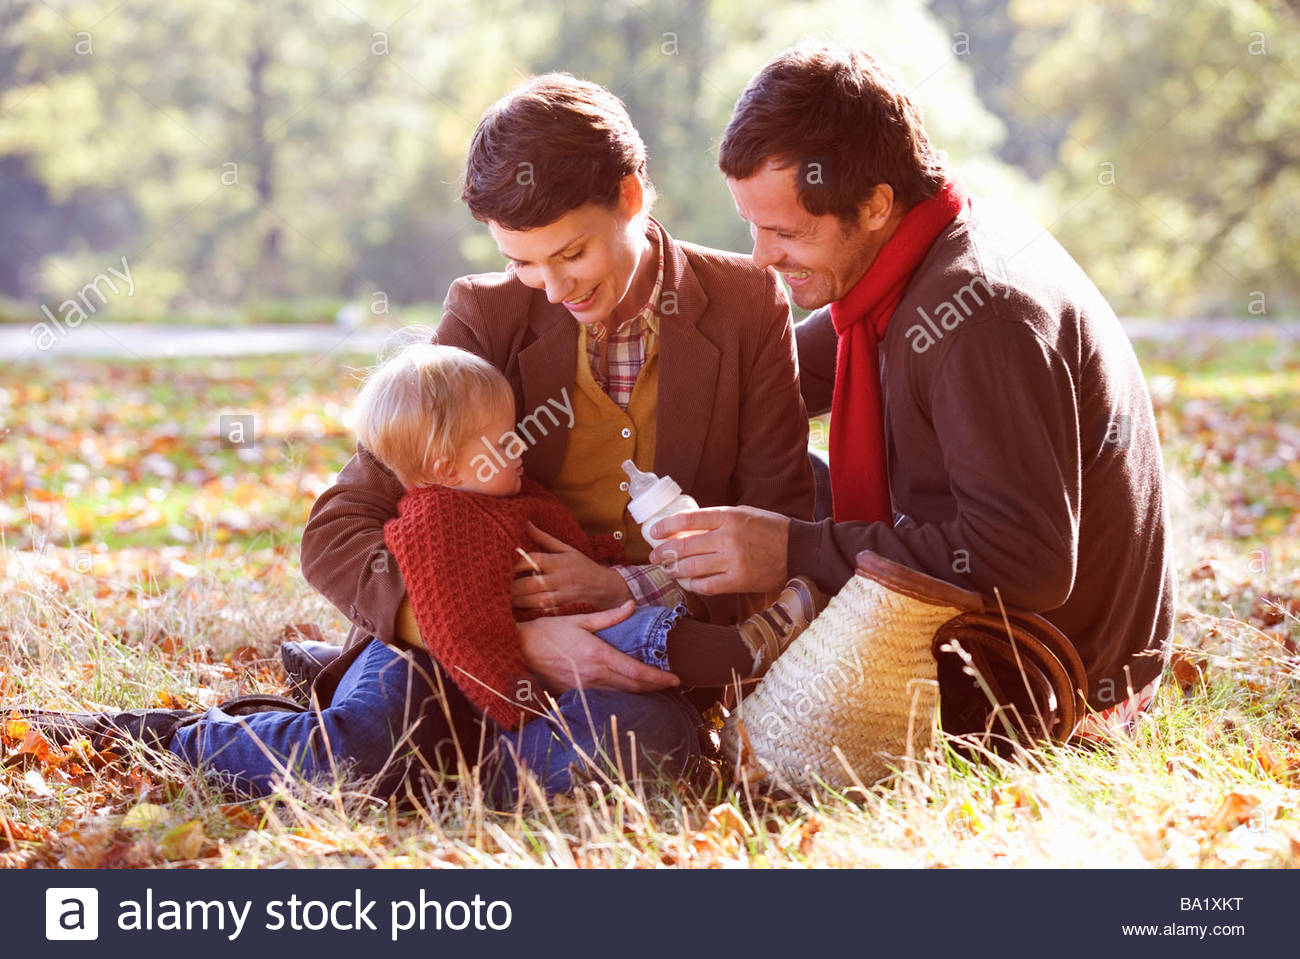 A young family sitting on the grass, father feeding the baby - Stock Image